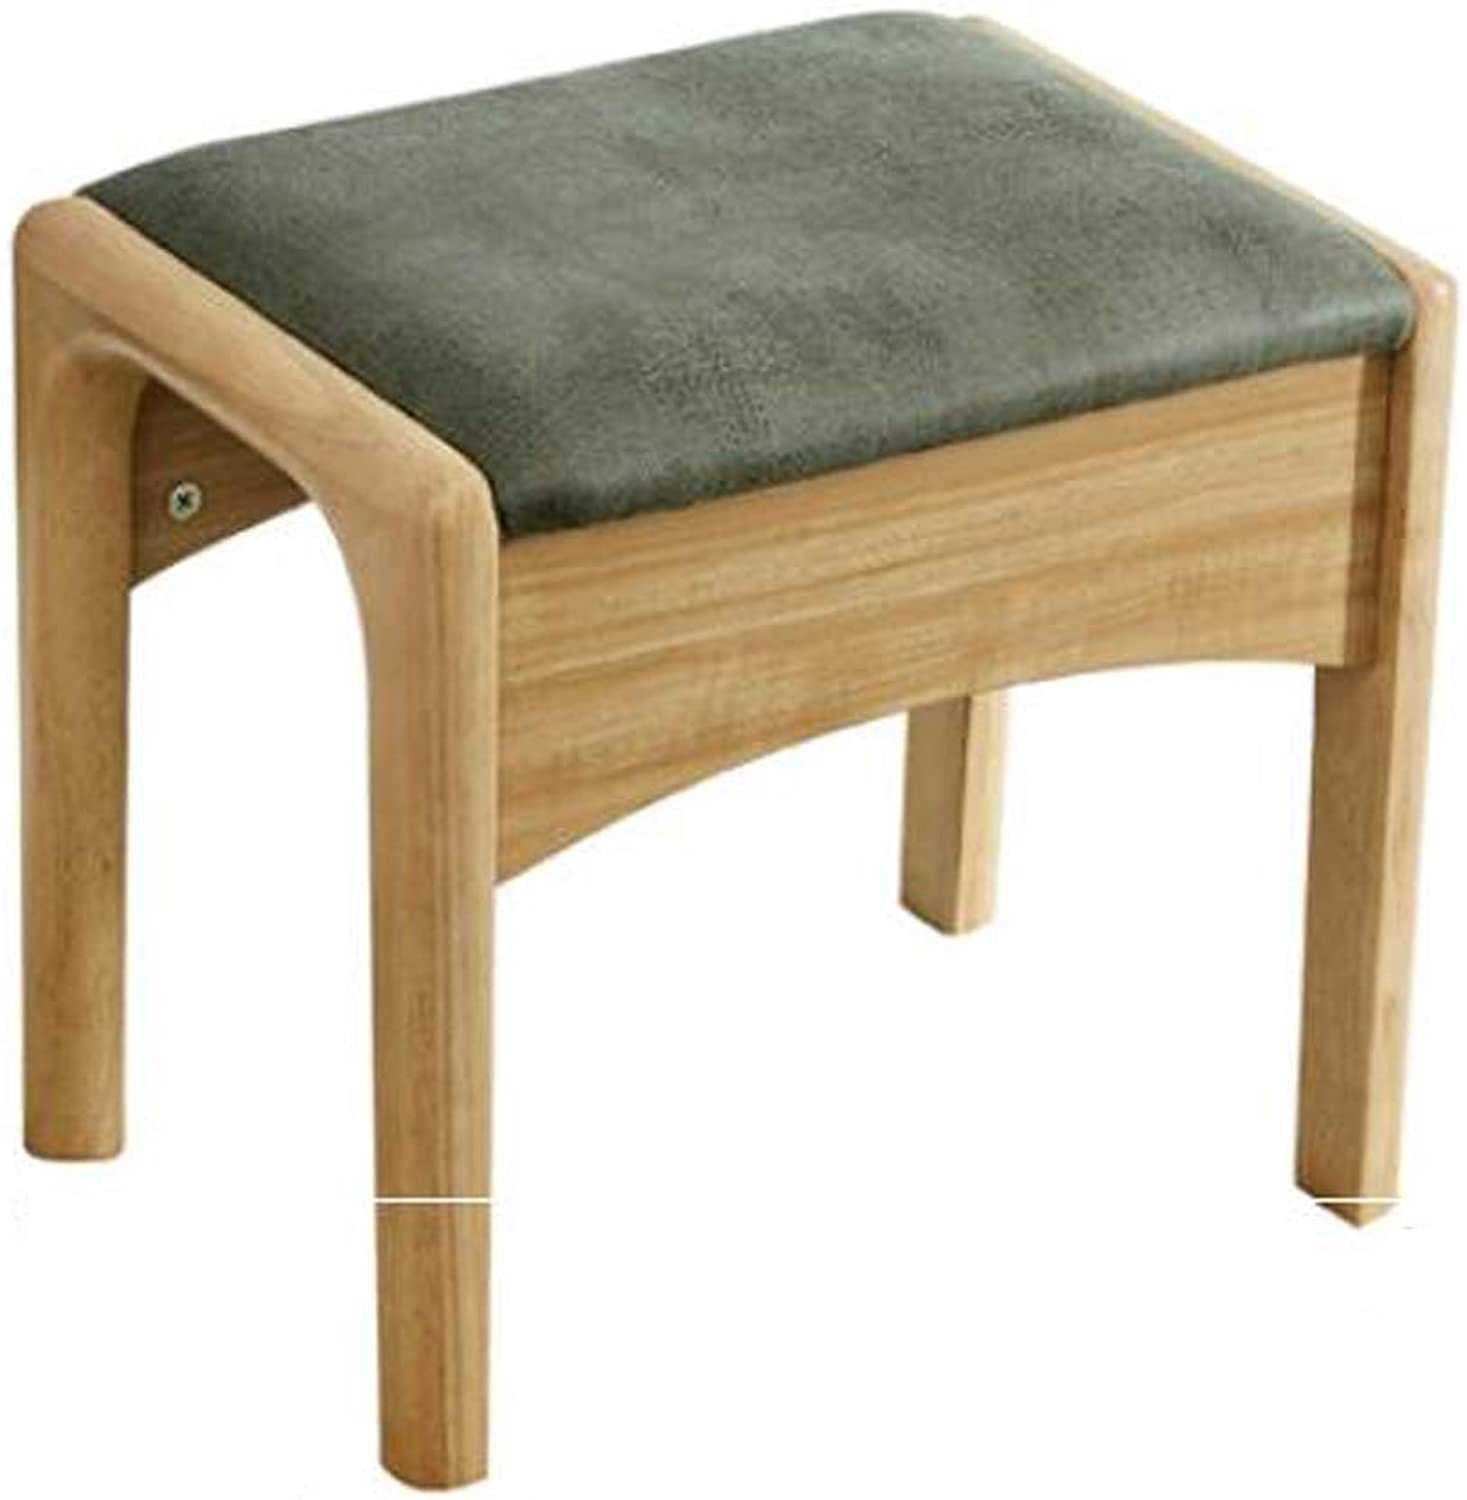 SYFO Household Solid Wood Stool, Simple shoes Bench, Creative Stool, Dressing Stool Stool